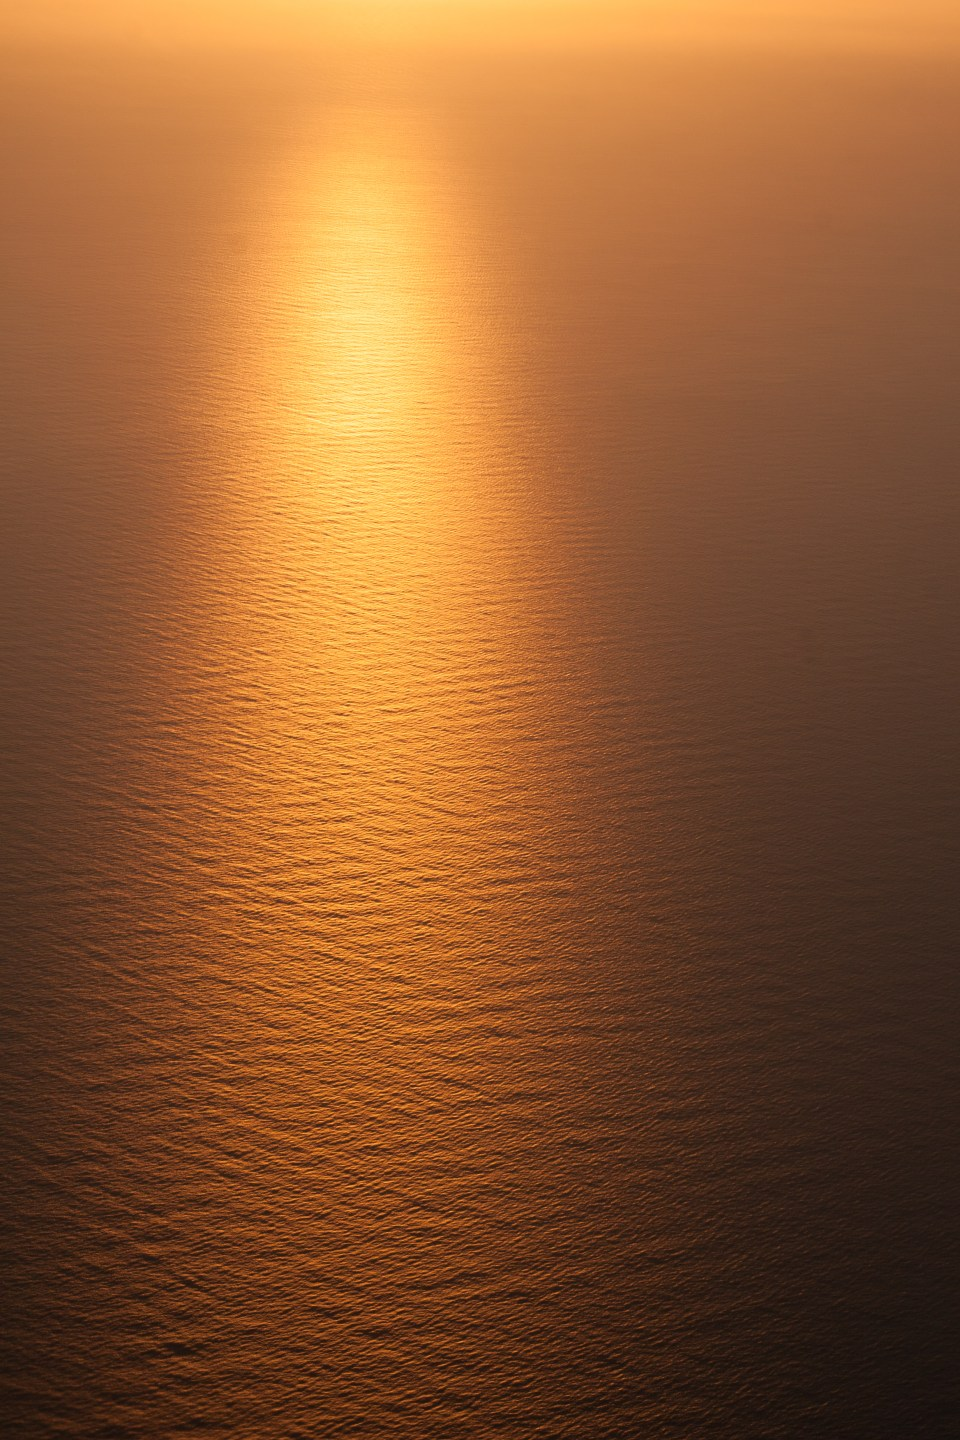 ripples in the sea from a plane at sunrise